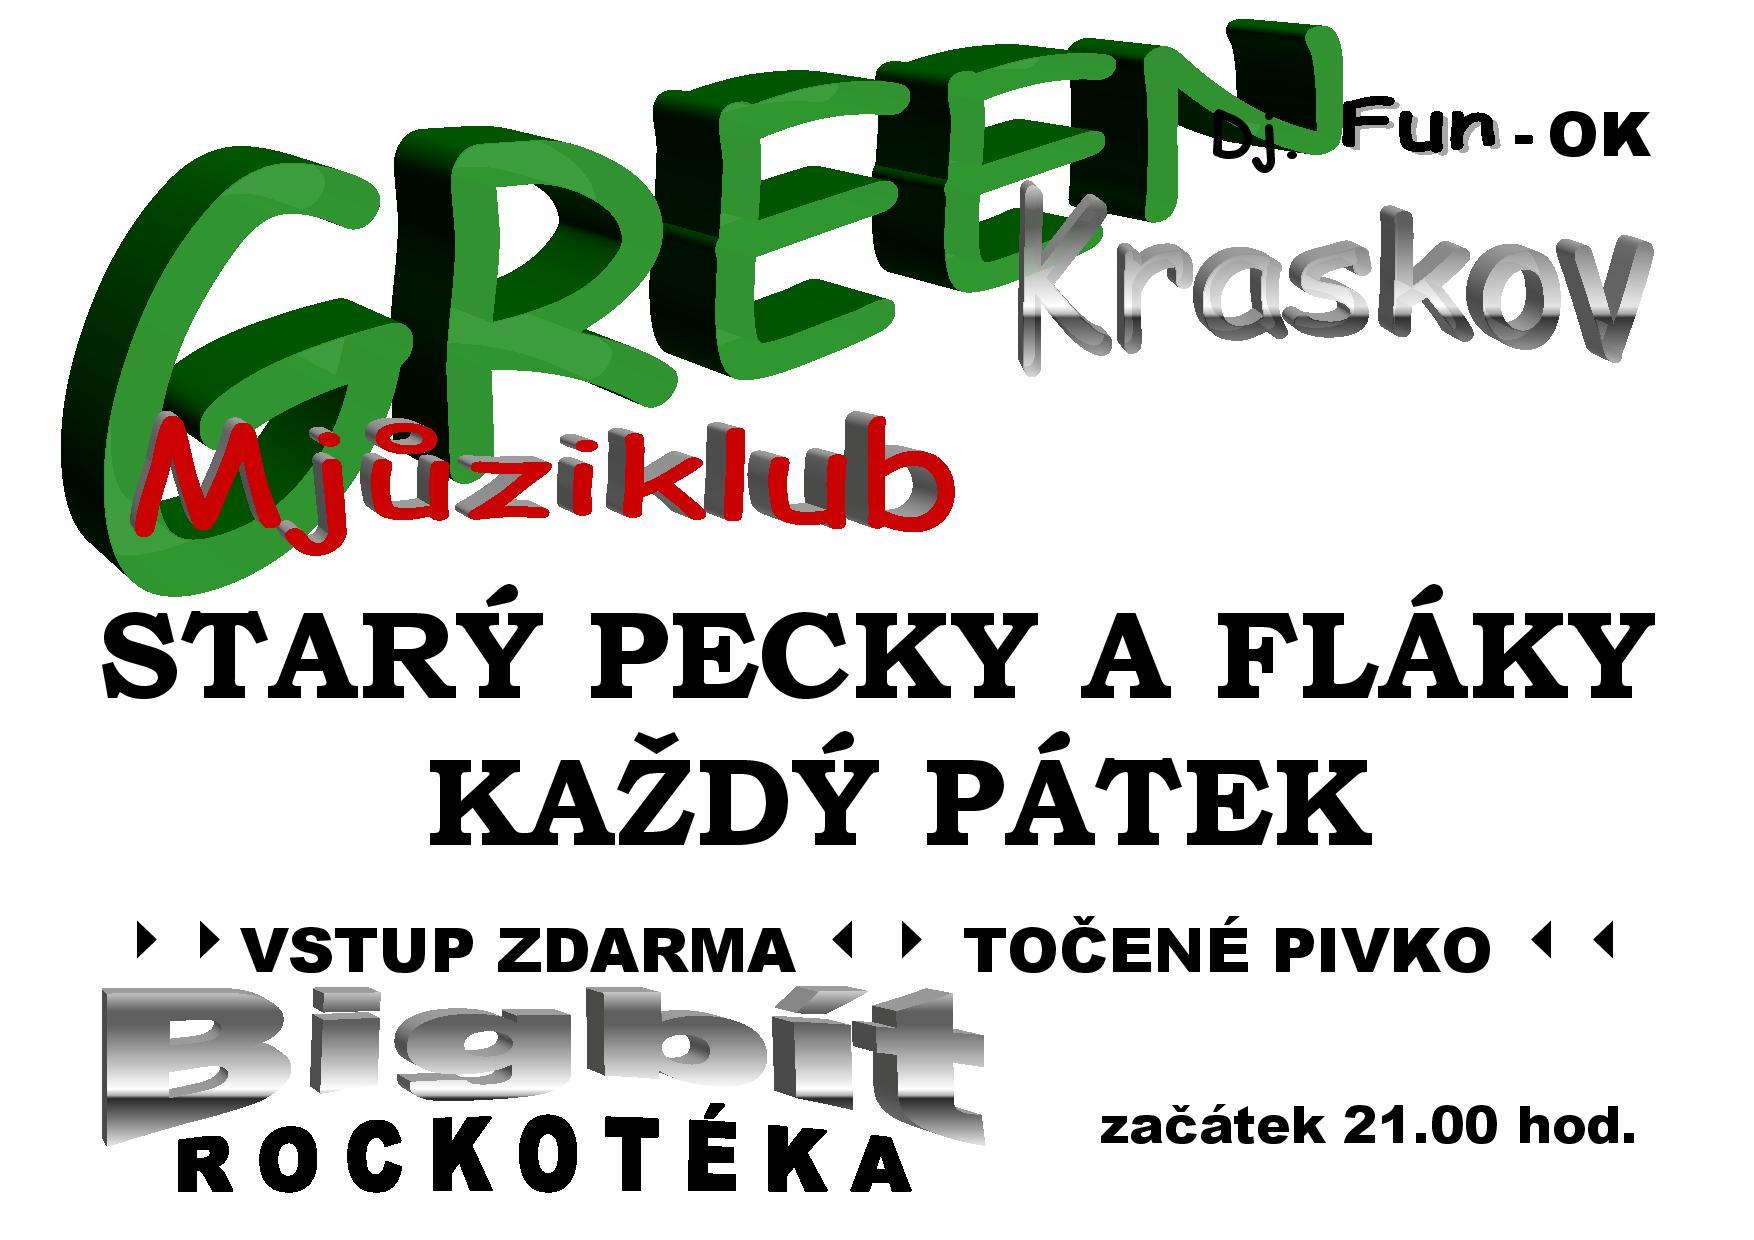 Green-page-001